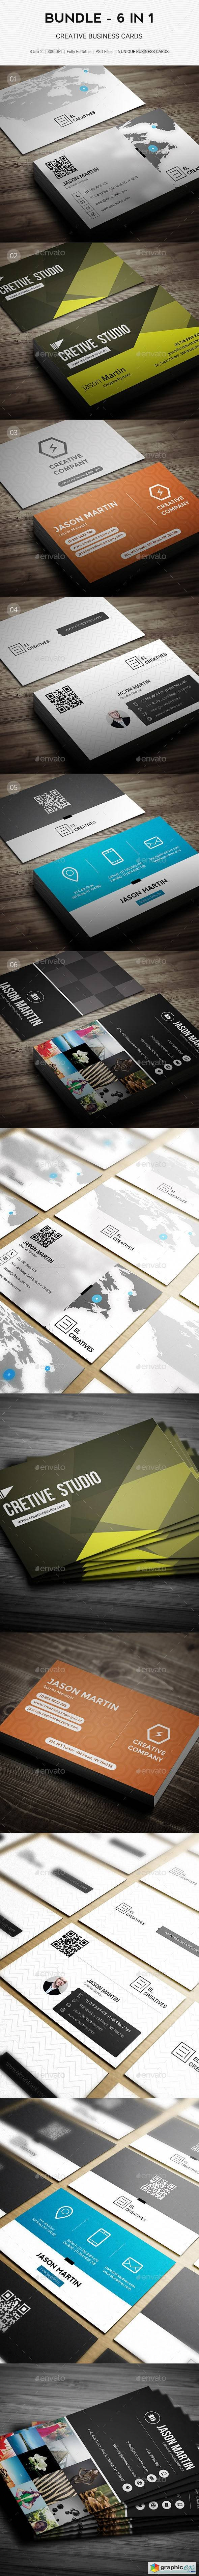 Bundle - 6 in 1 - Pro Creative Business Cards - B52